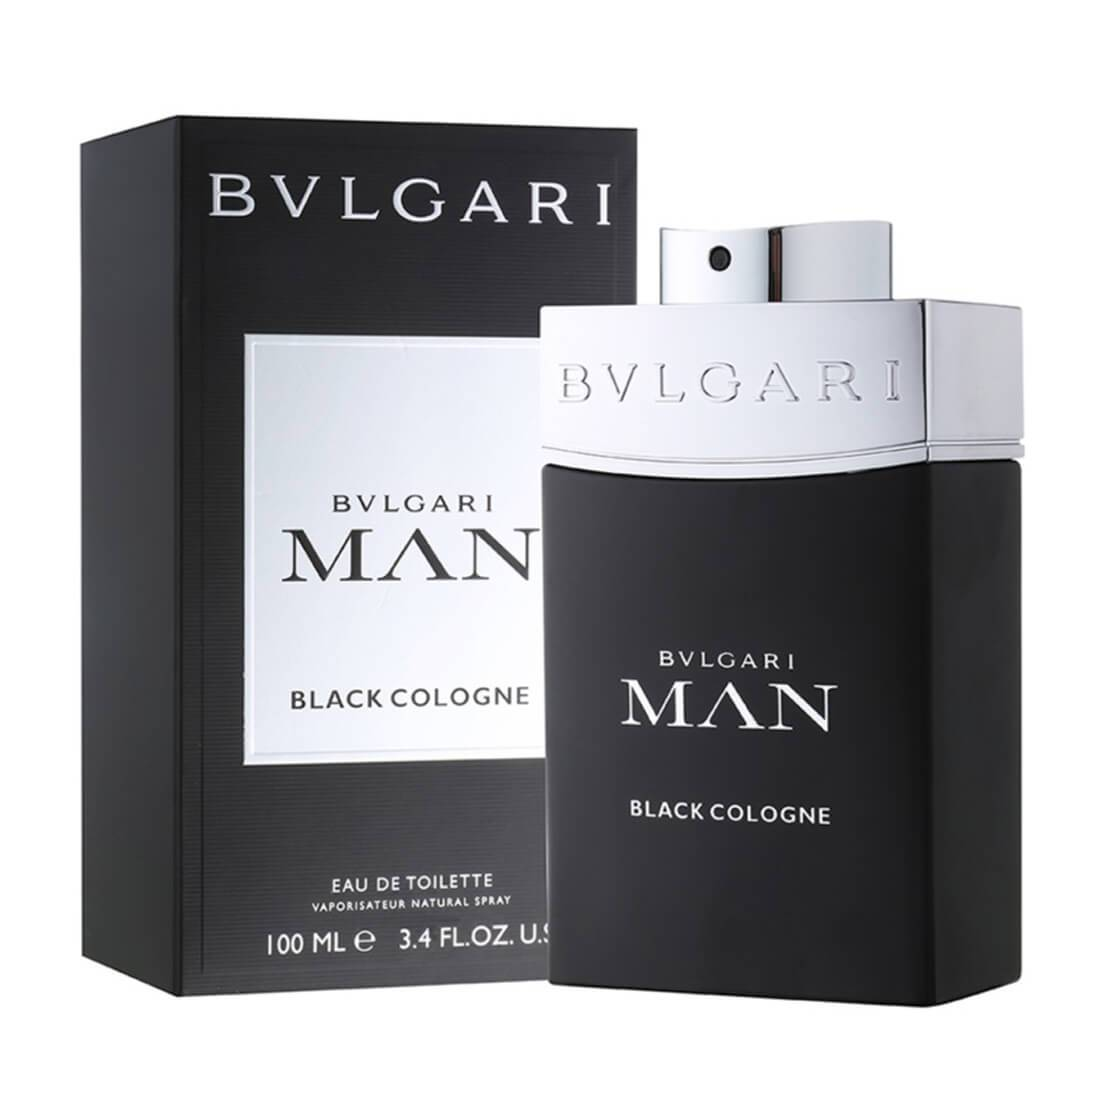 Man Black Colonge